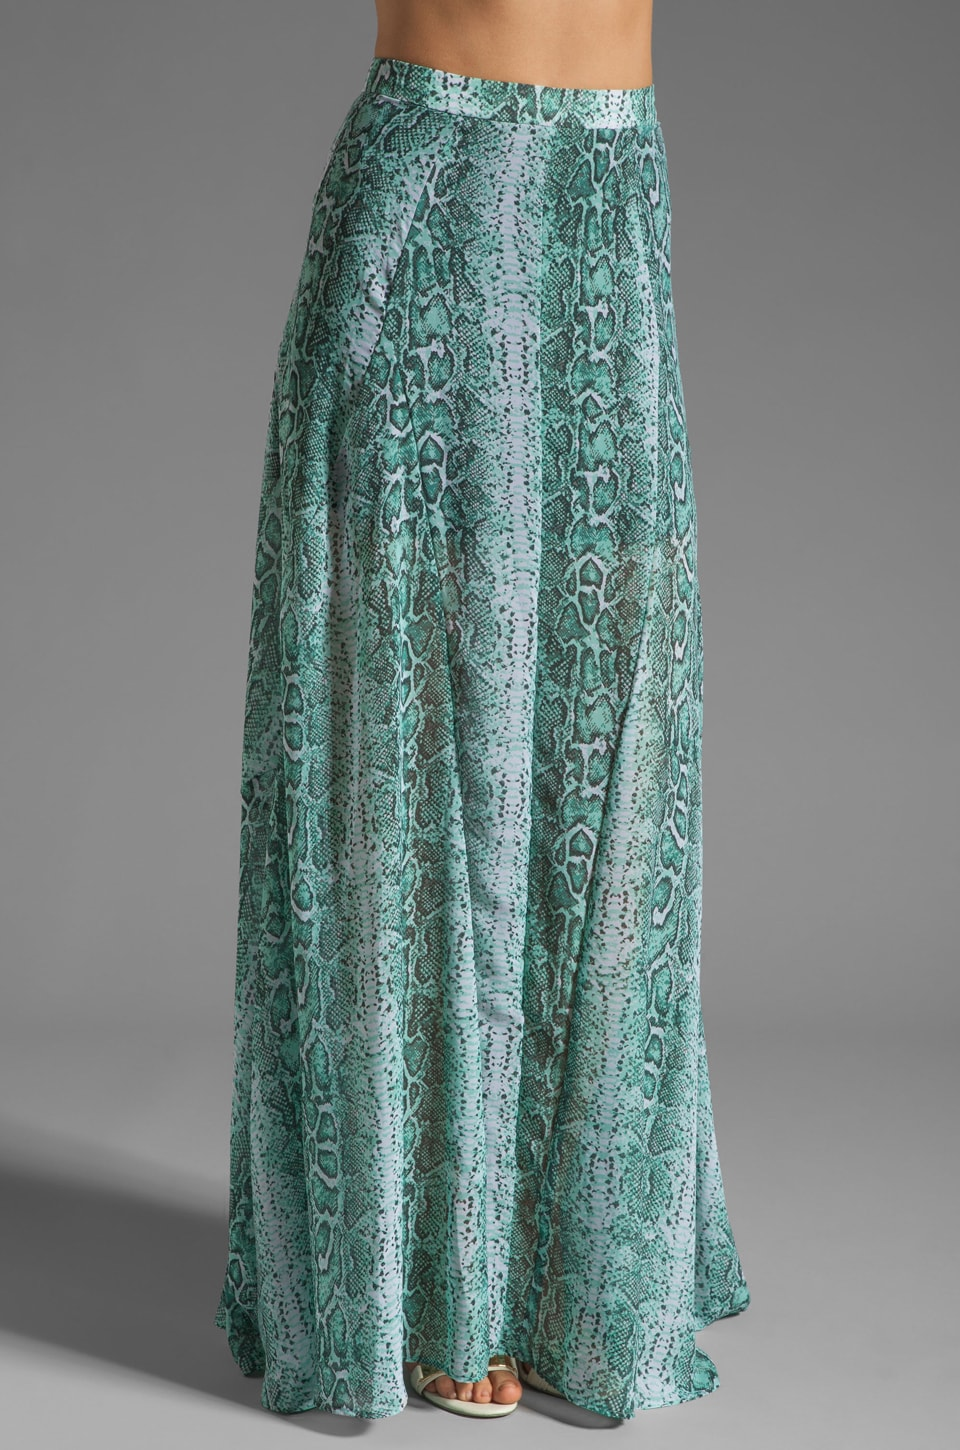 Show Me Your Mumu Princess Di Ball Gown in Turquoise Python